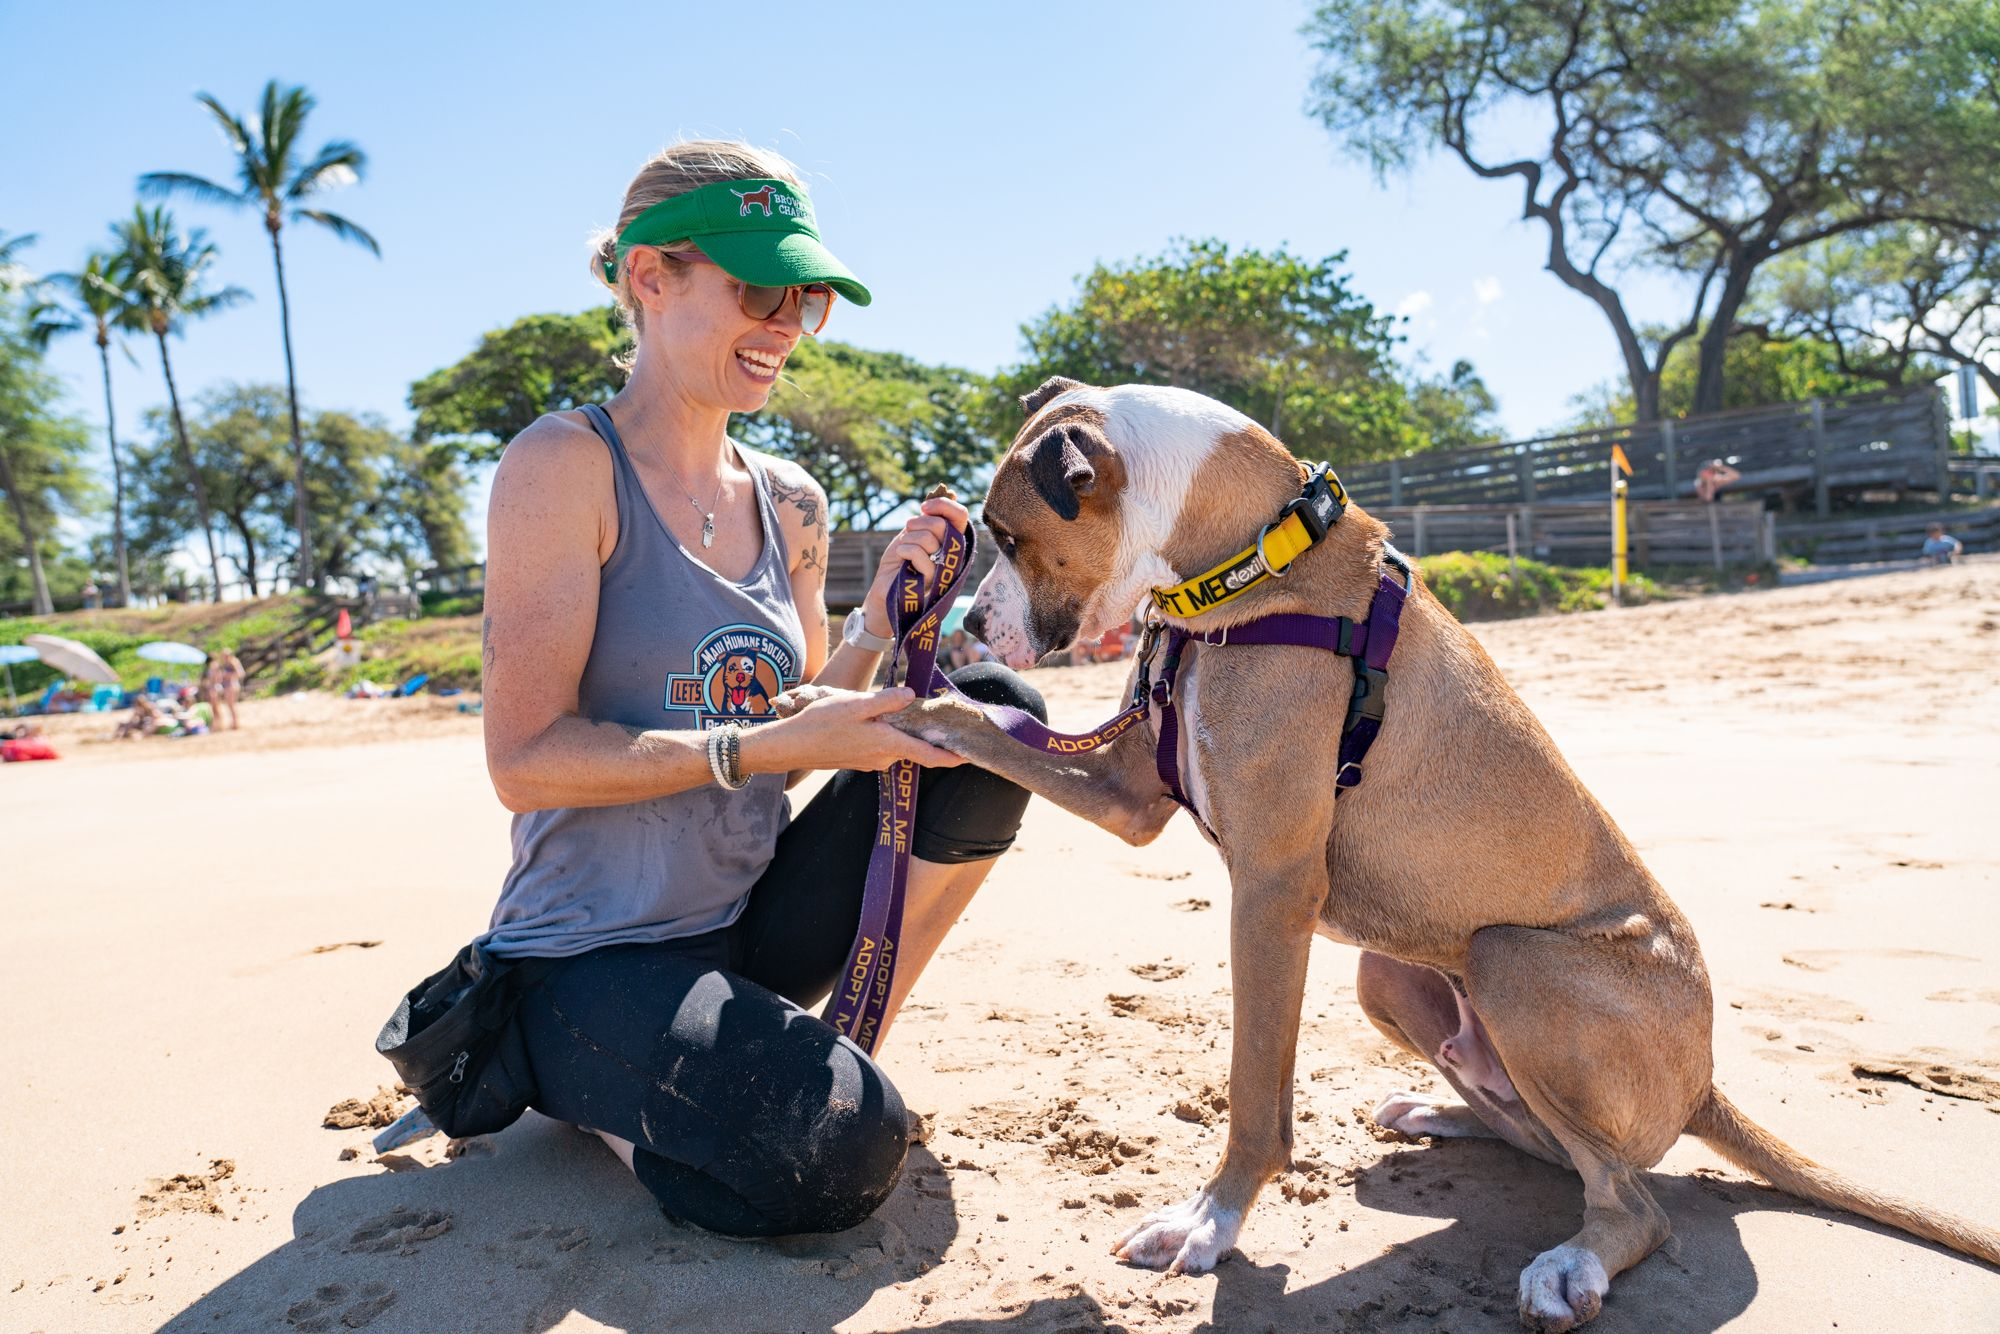 Woman and dog on the beach shaking hands/paws